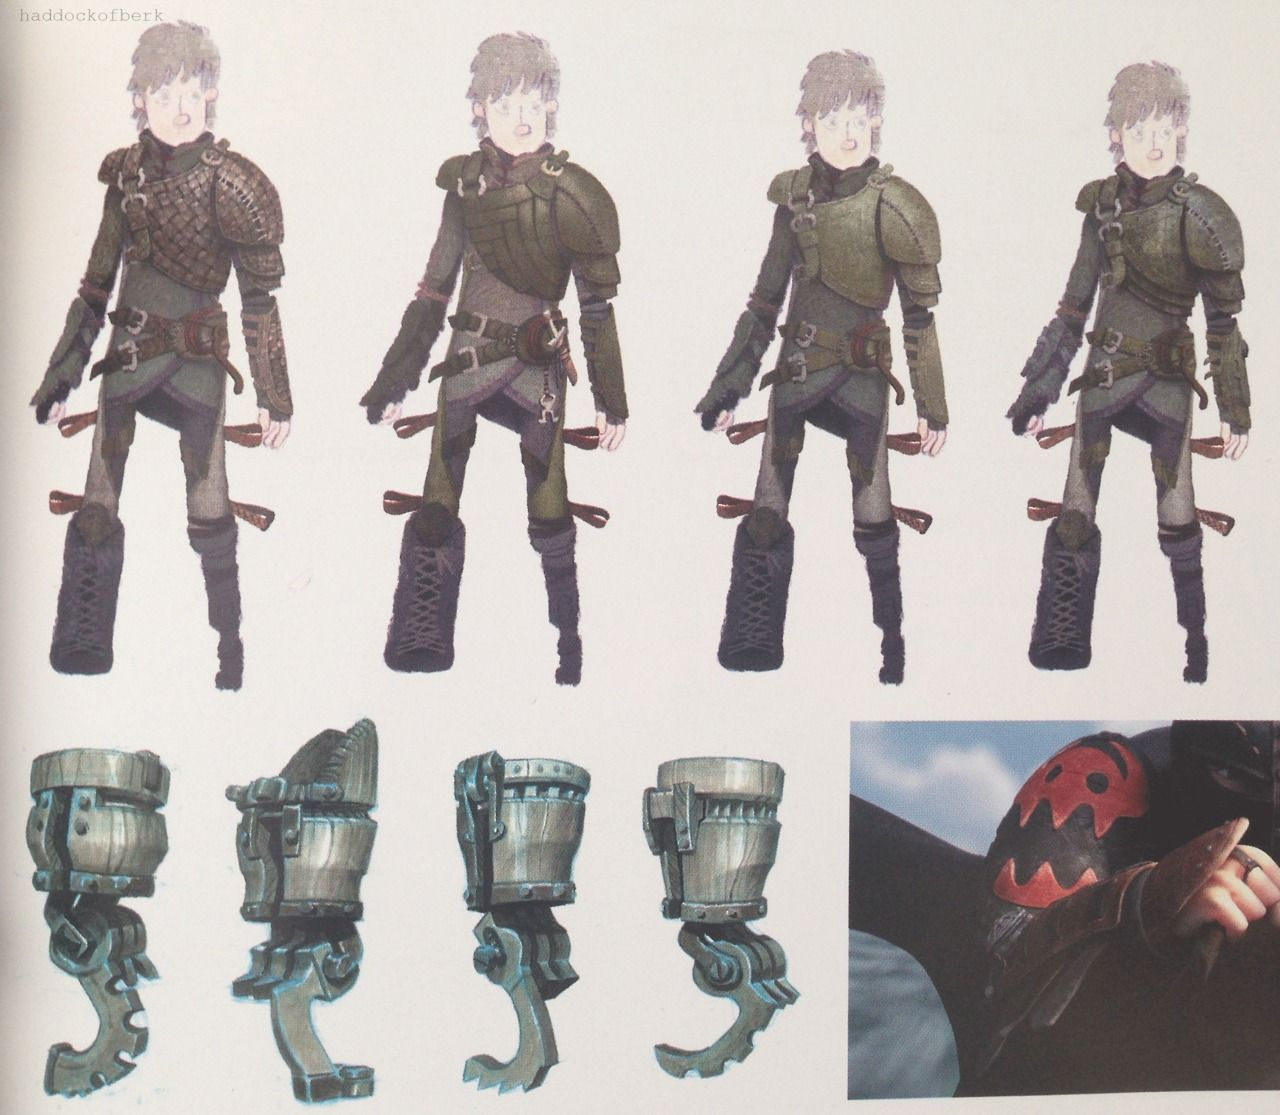 Character Design How To Train Your Dragon 2 : How to train your dragon concept art hiccup google